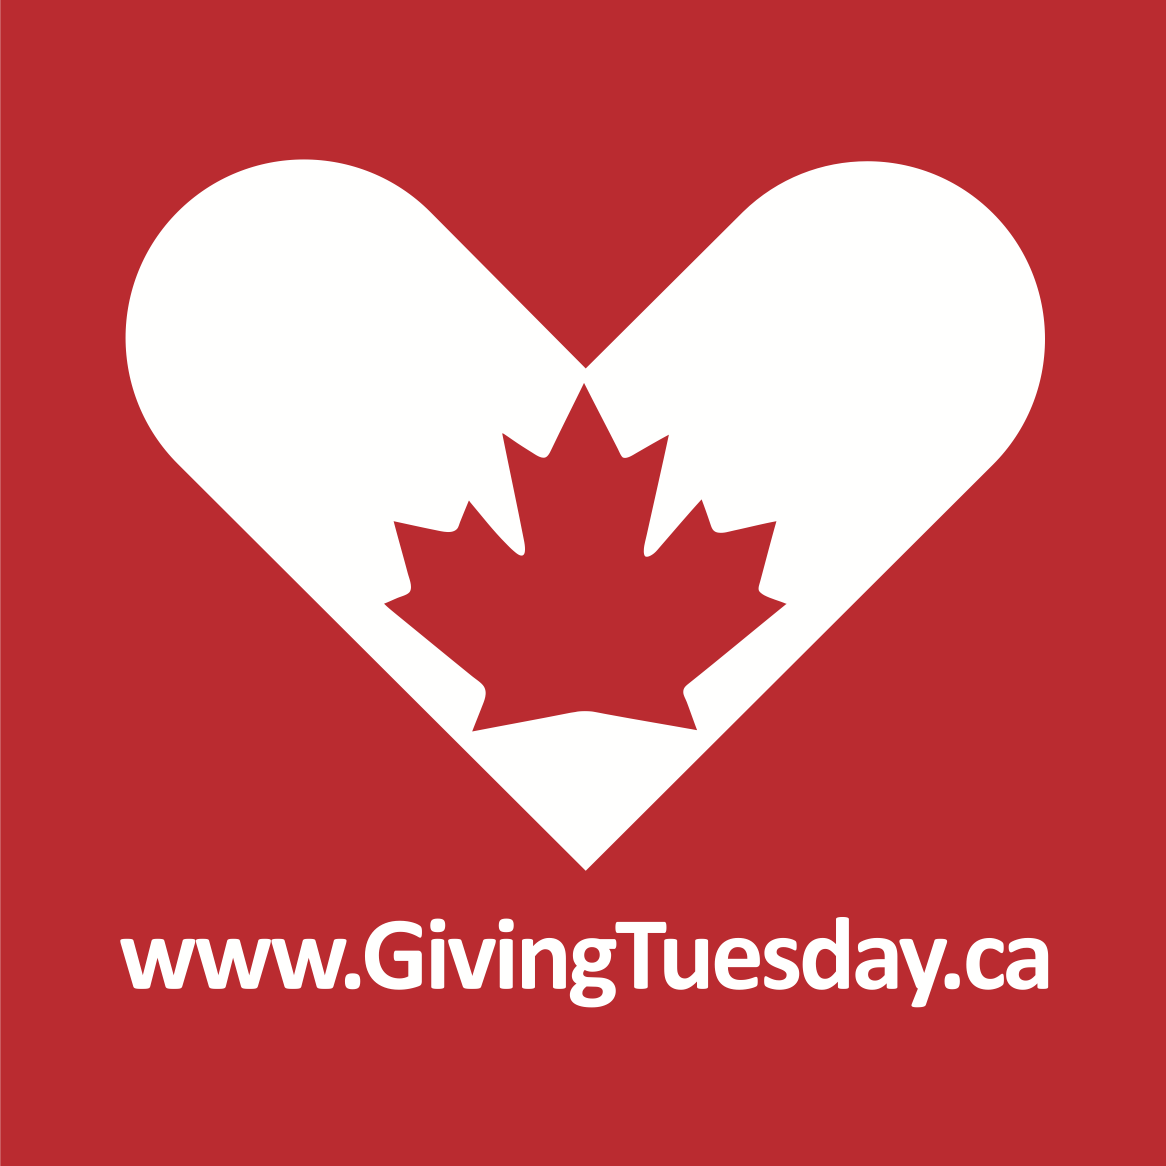 Giving Tuesday is coming and we need your help!